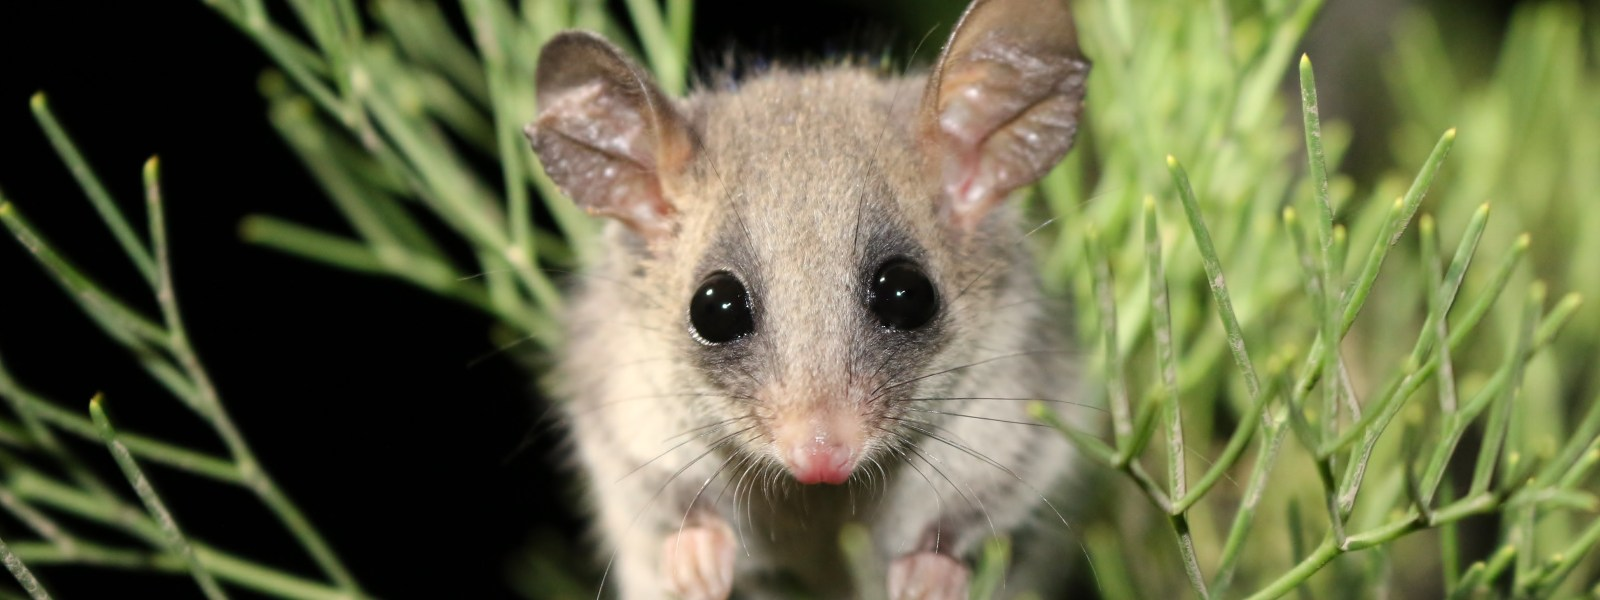 Eastern Pygmy possum habitat to be cleared for eco-resort in the Royal National Park!